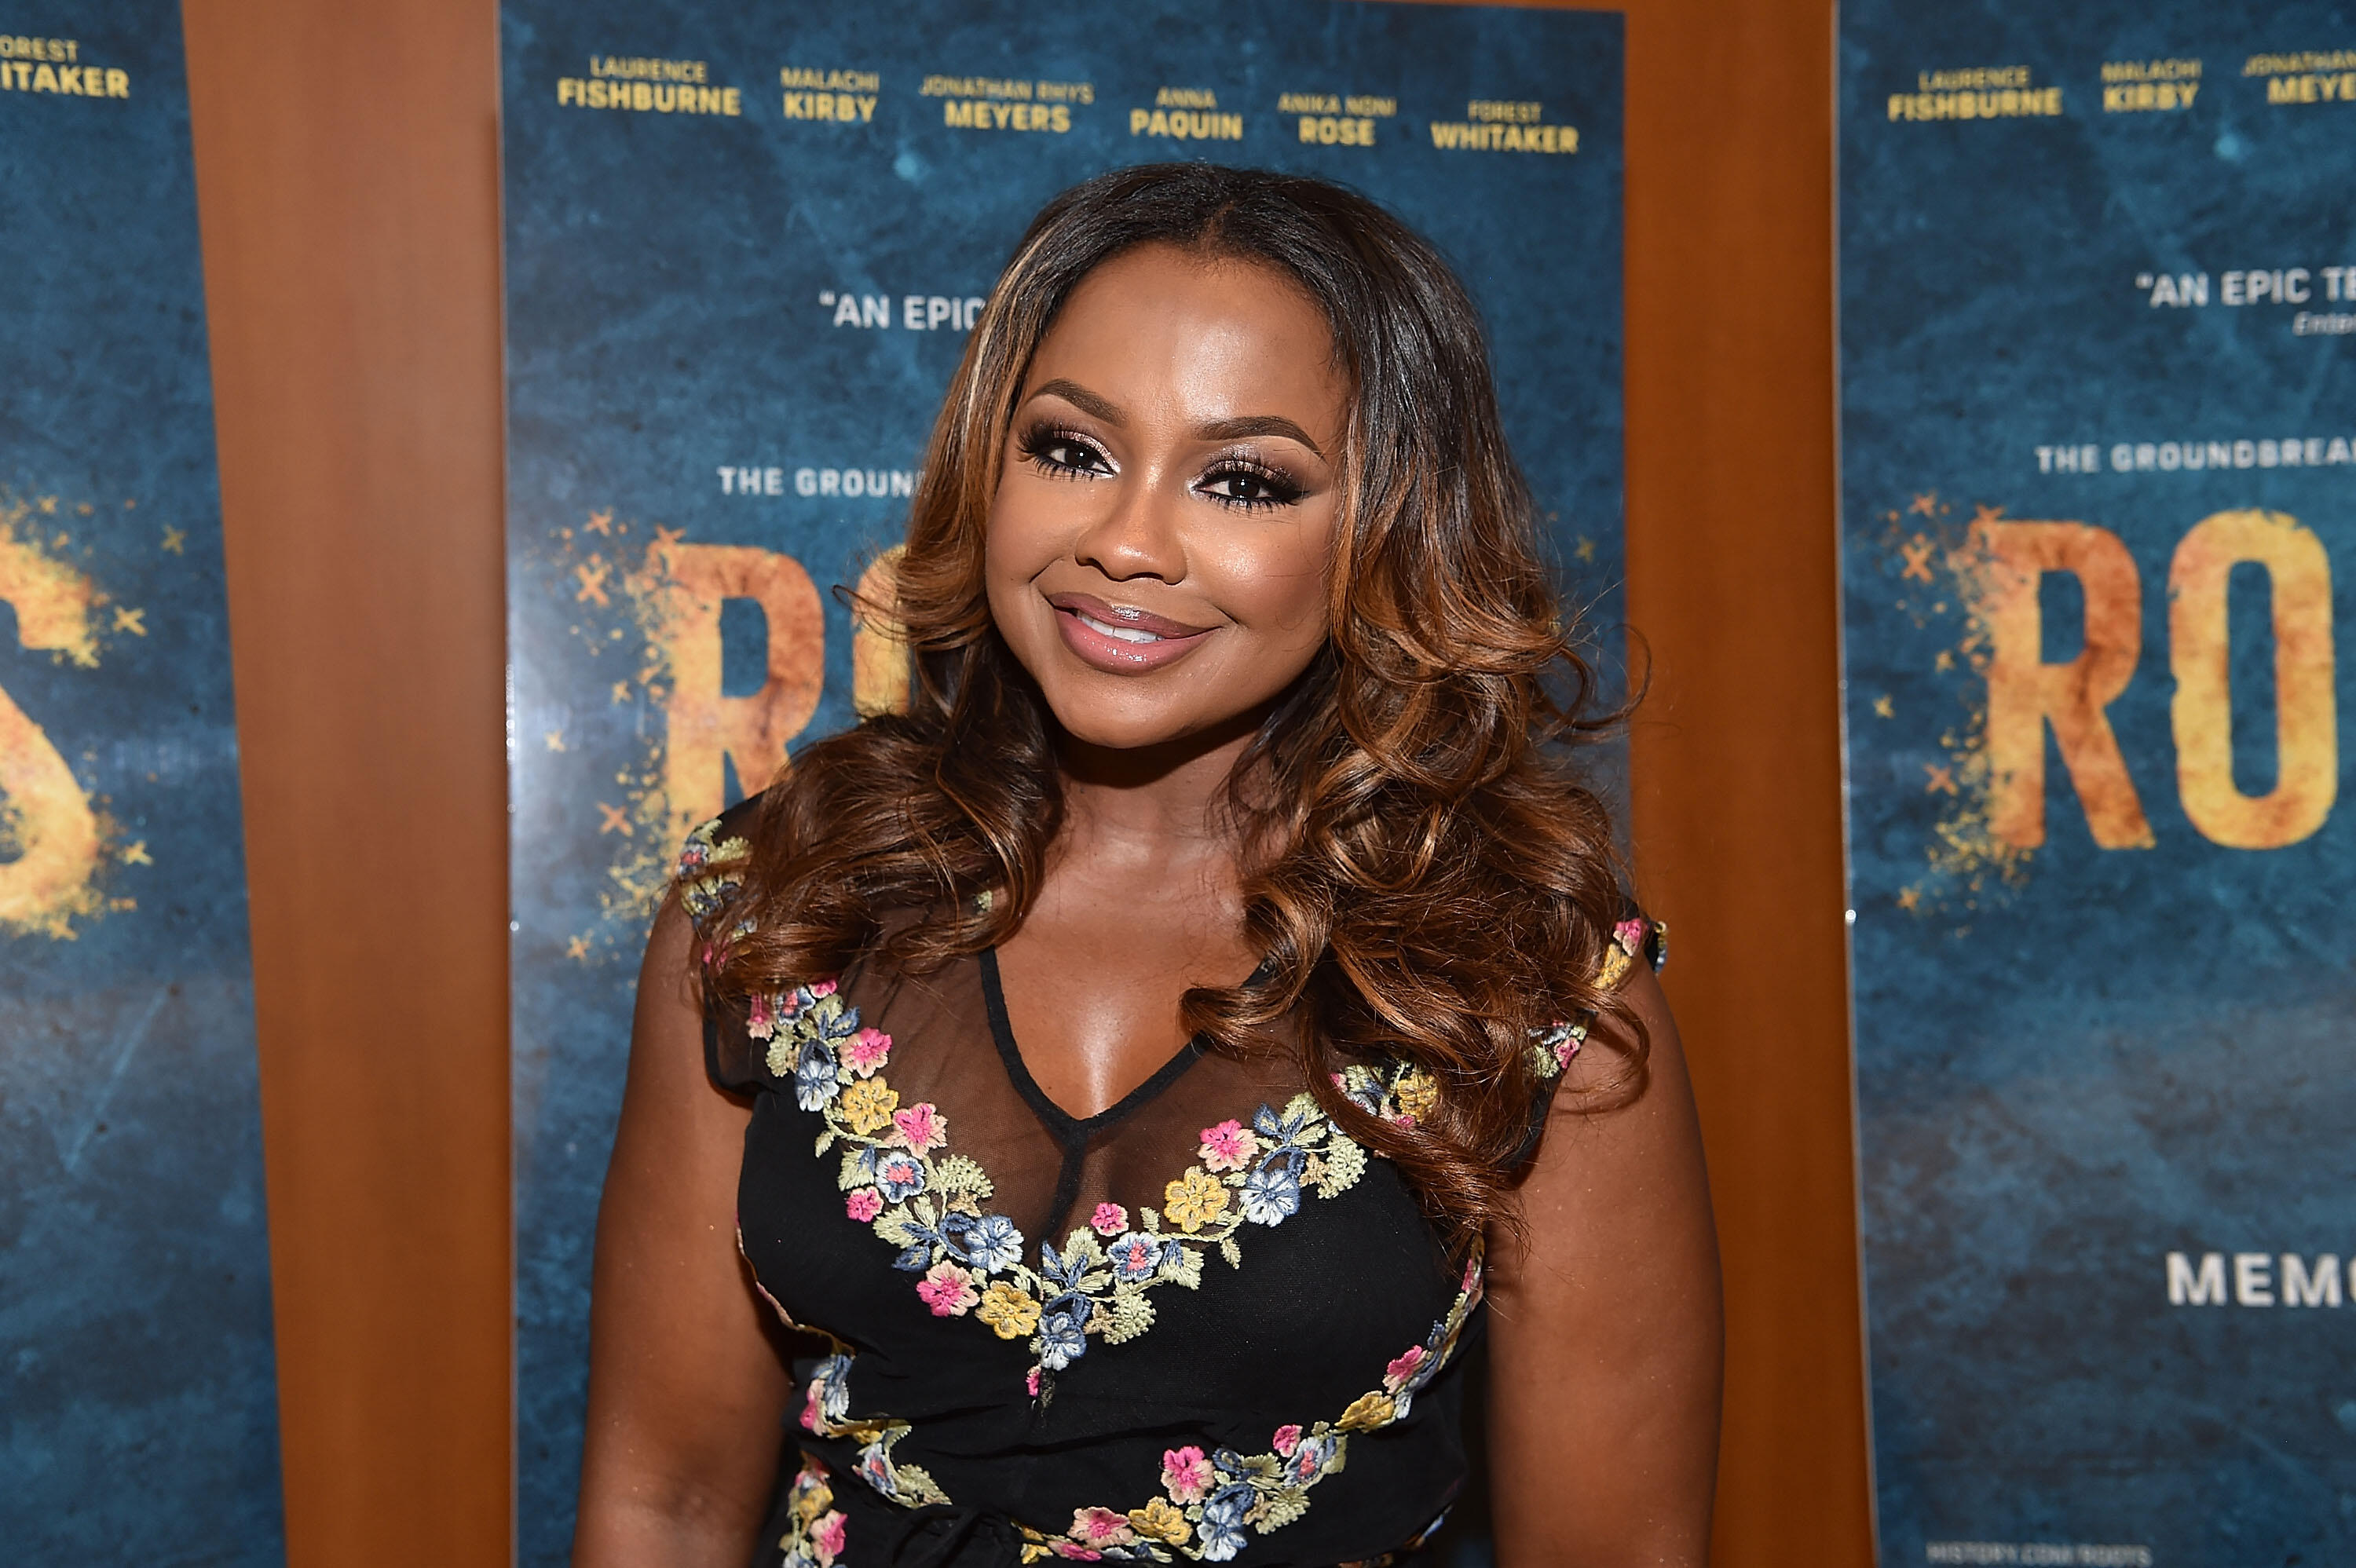 ATLANTA, GA - MAY 09:  (EXCLUSIVE COVERAGE) TV personality Phaedra Parks attends HISTORY's